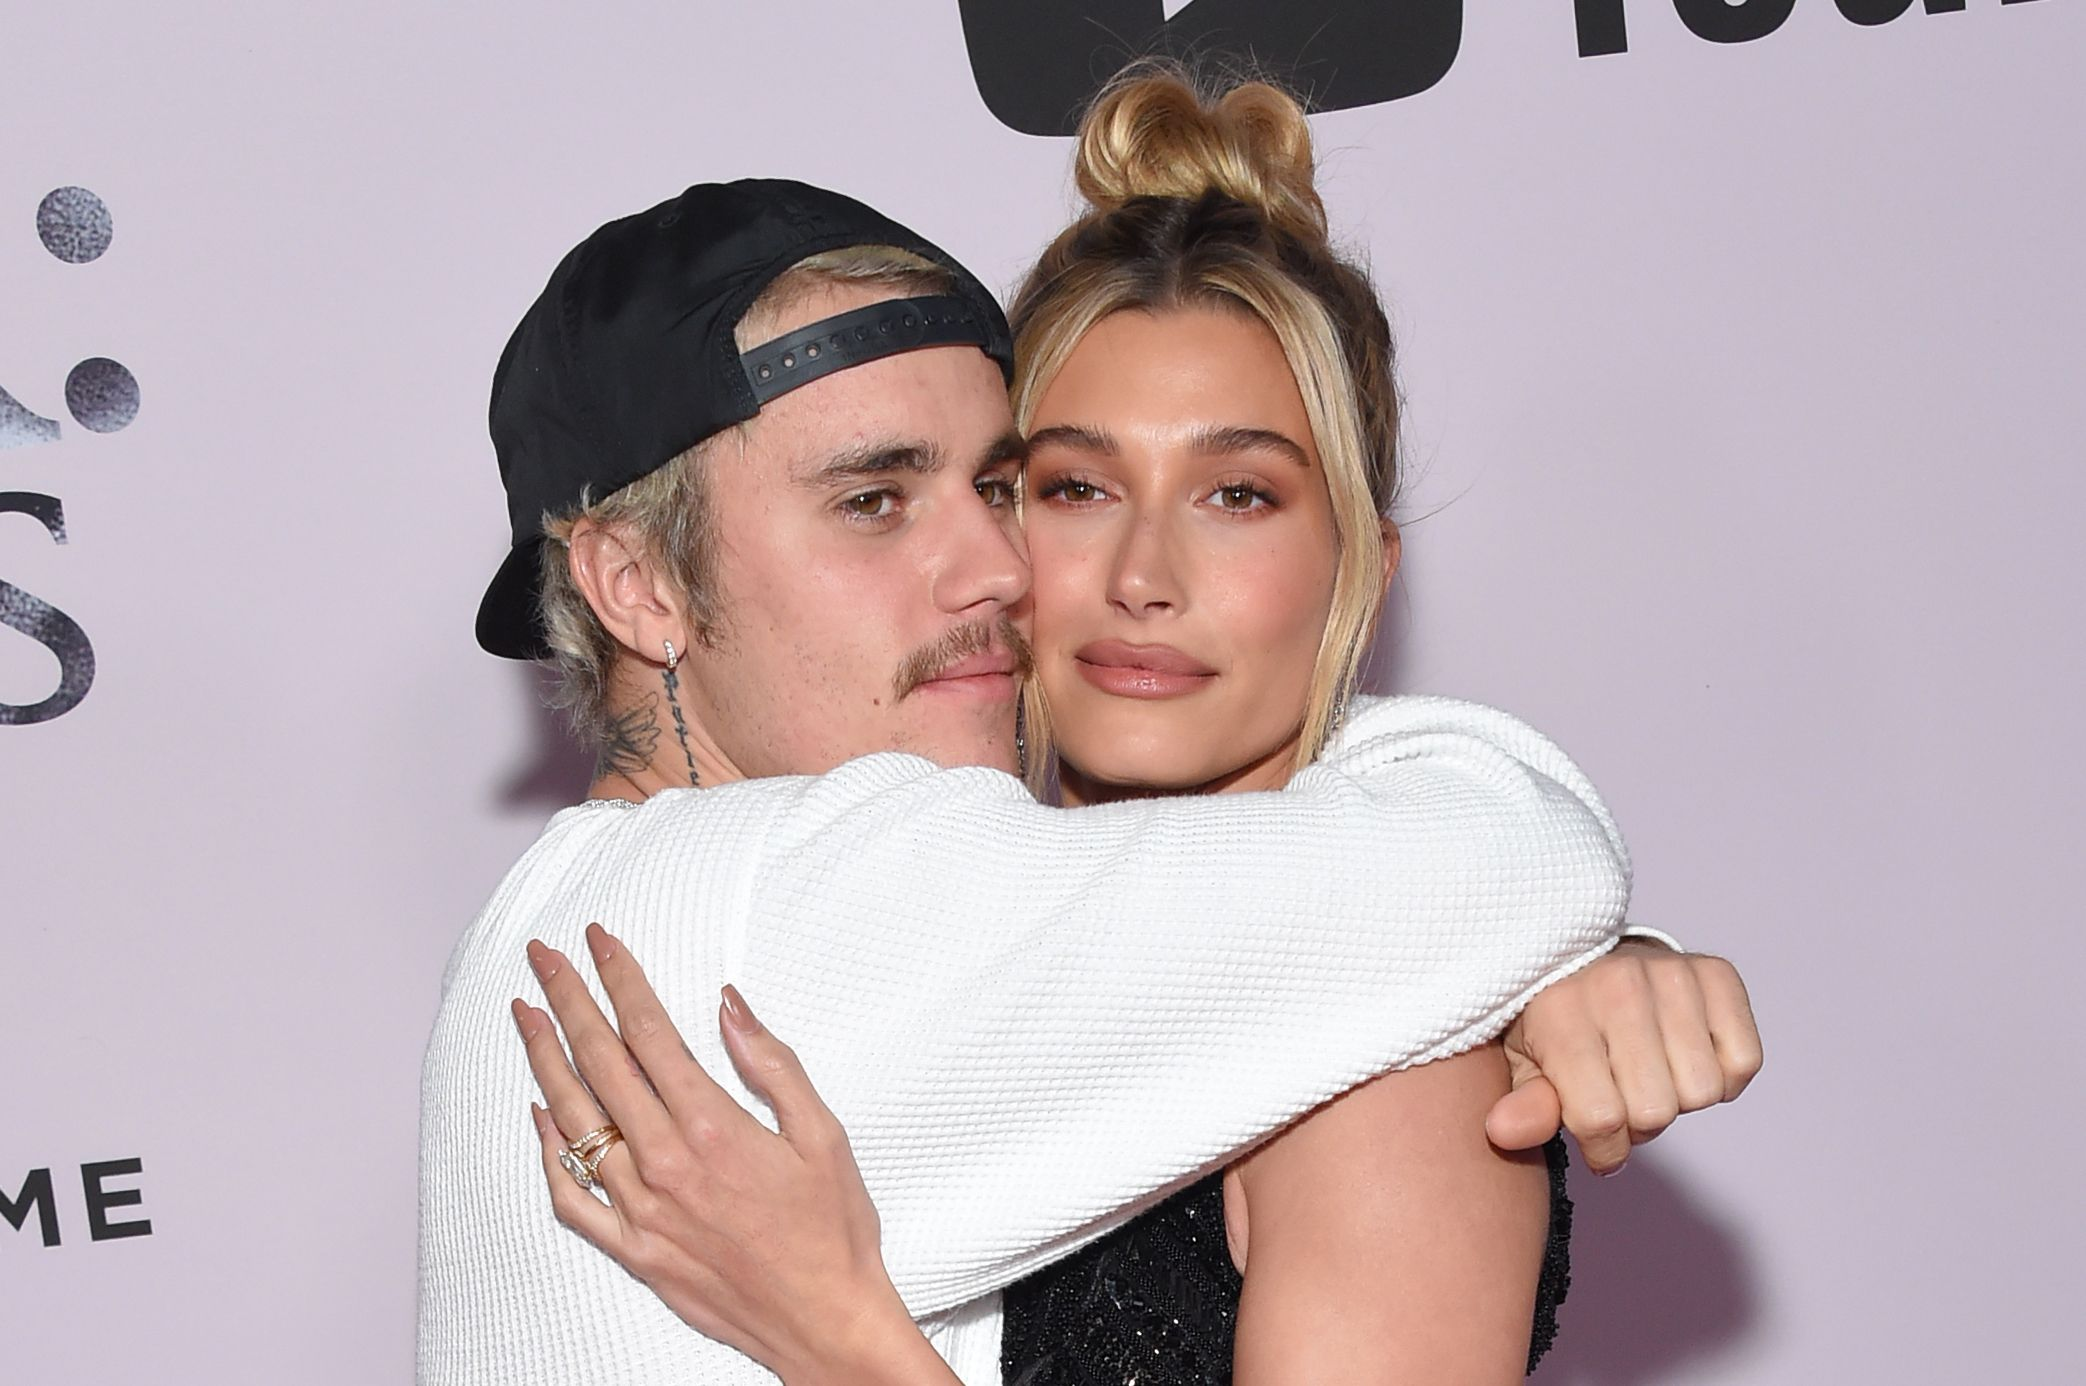 Justin Bieber and Hailey Baldwin holding each other